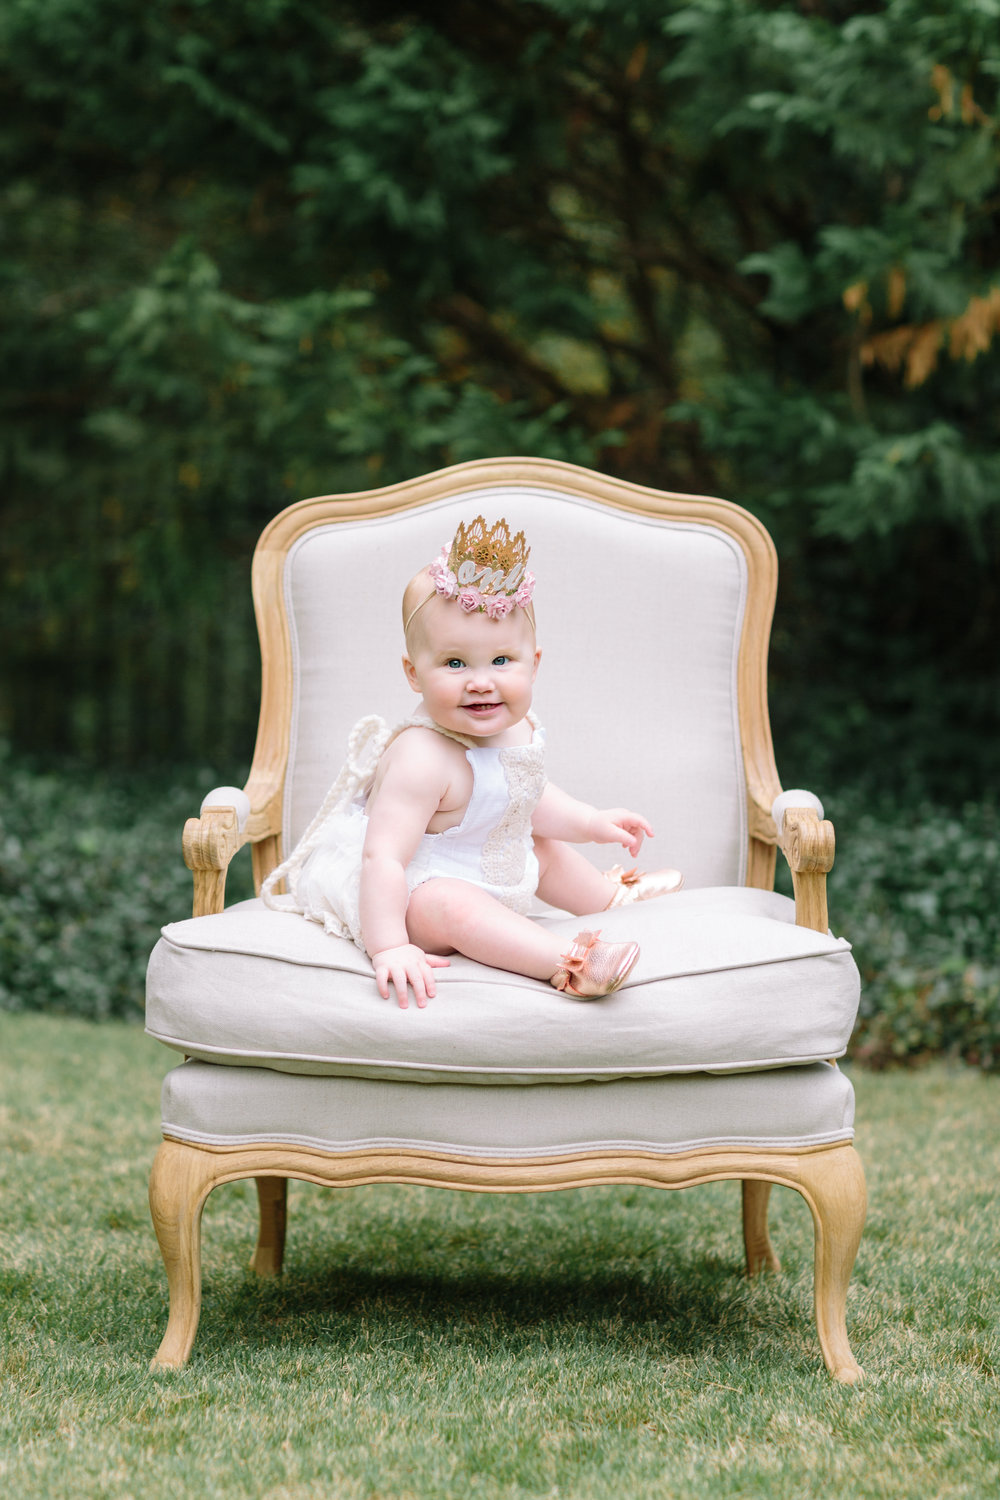 baby-vintage-chair-photo